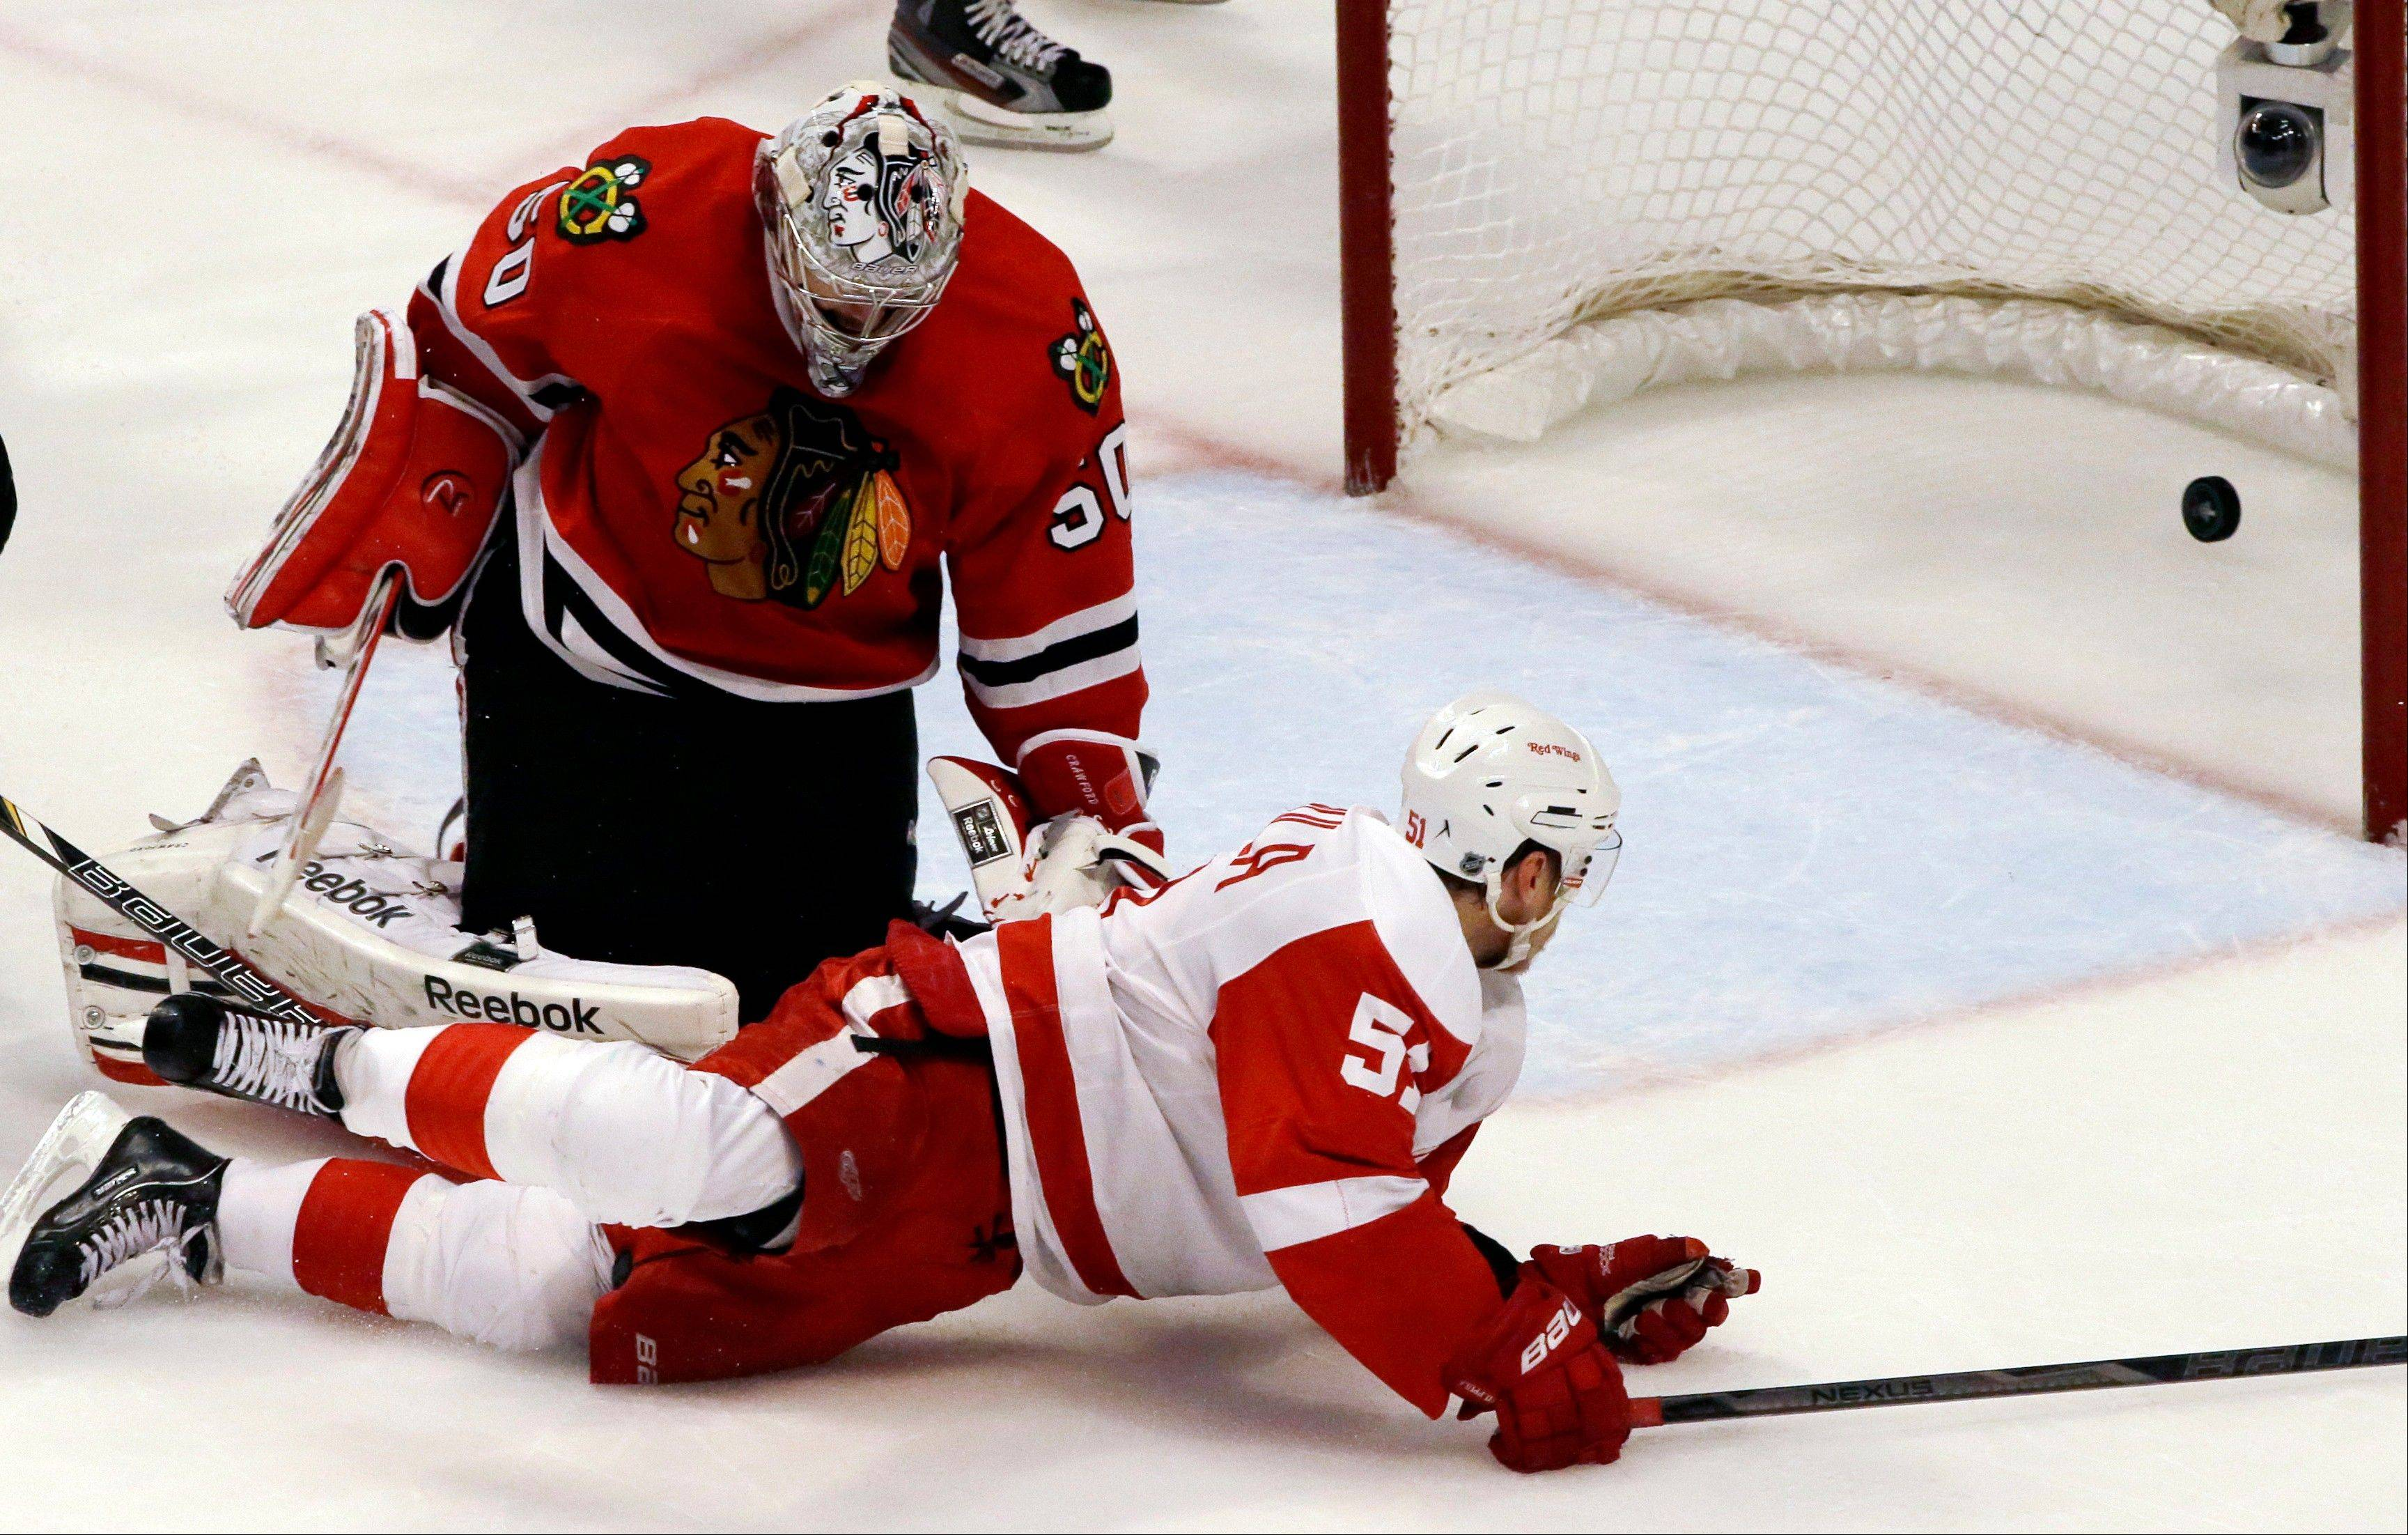 Detroit Red Wings' Valtteri Filppula scores against goalie Corey Crawford during the third period of Game 2.